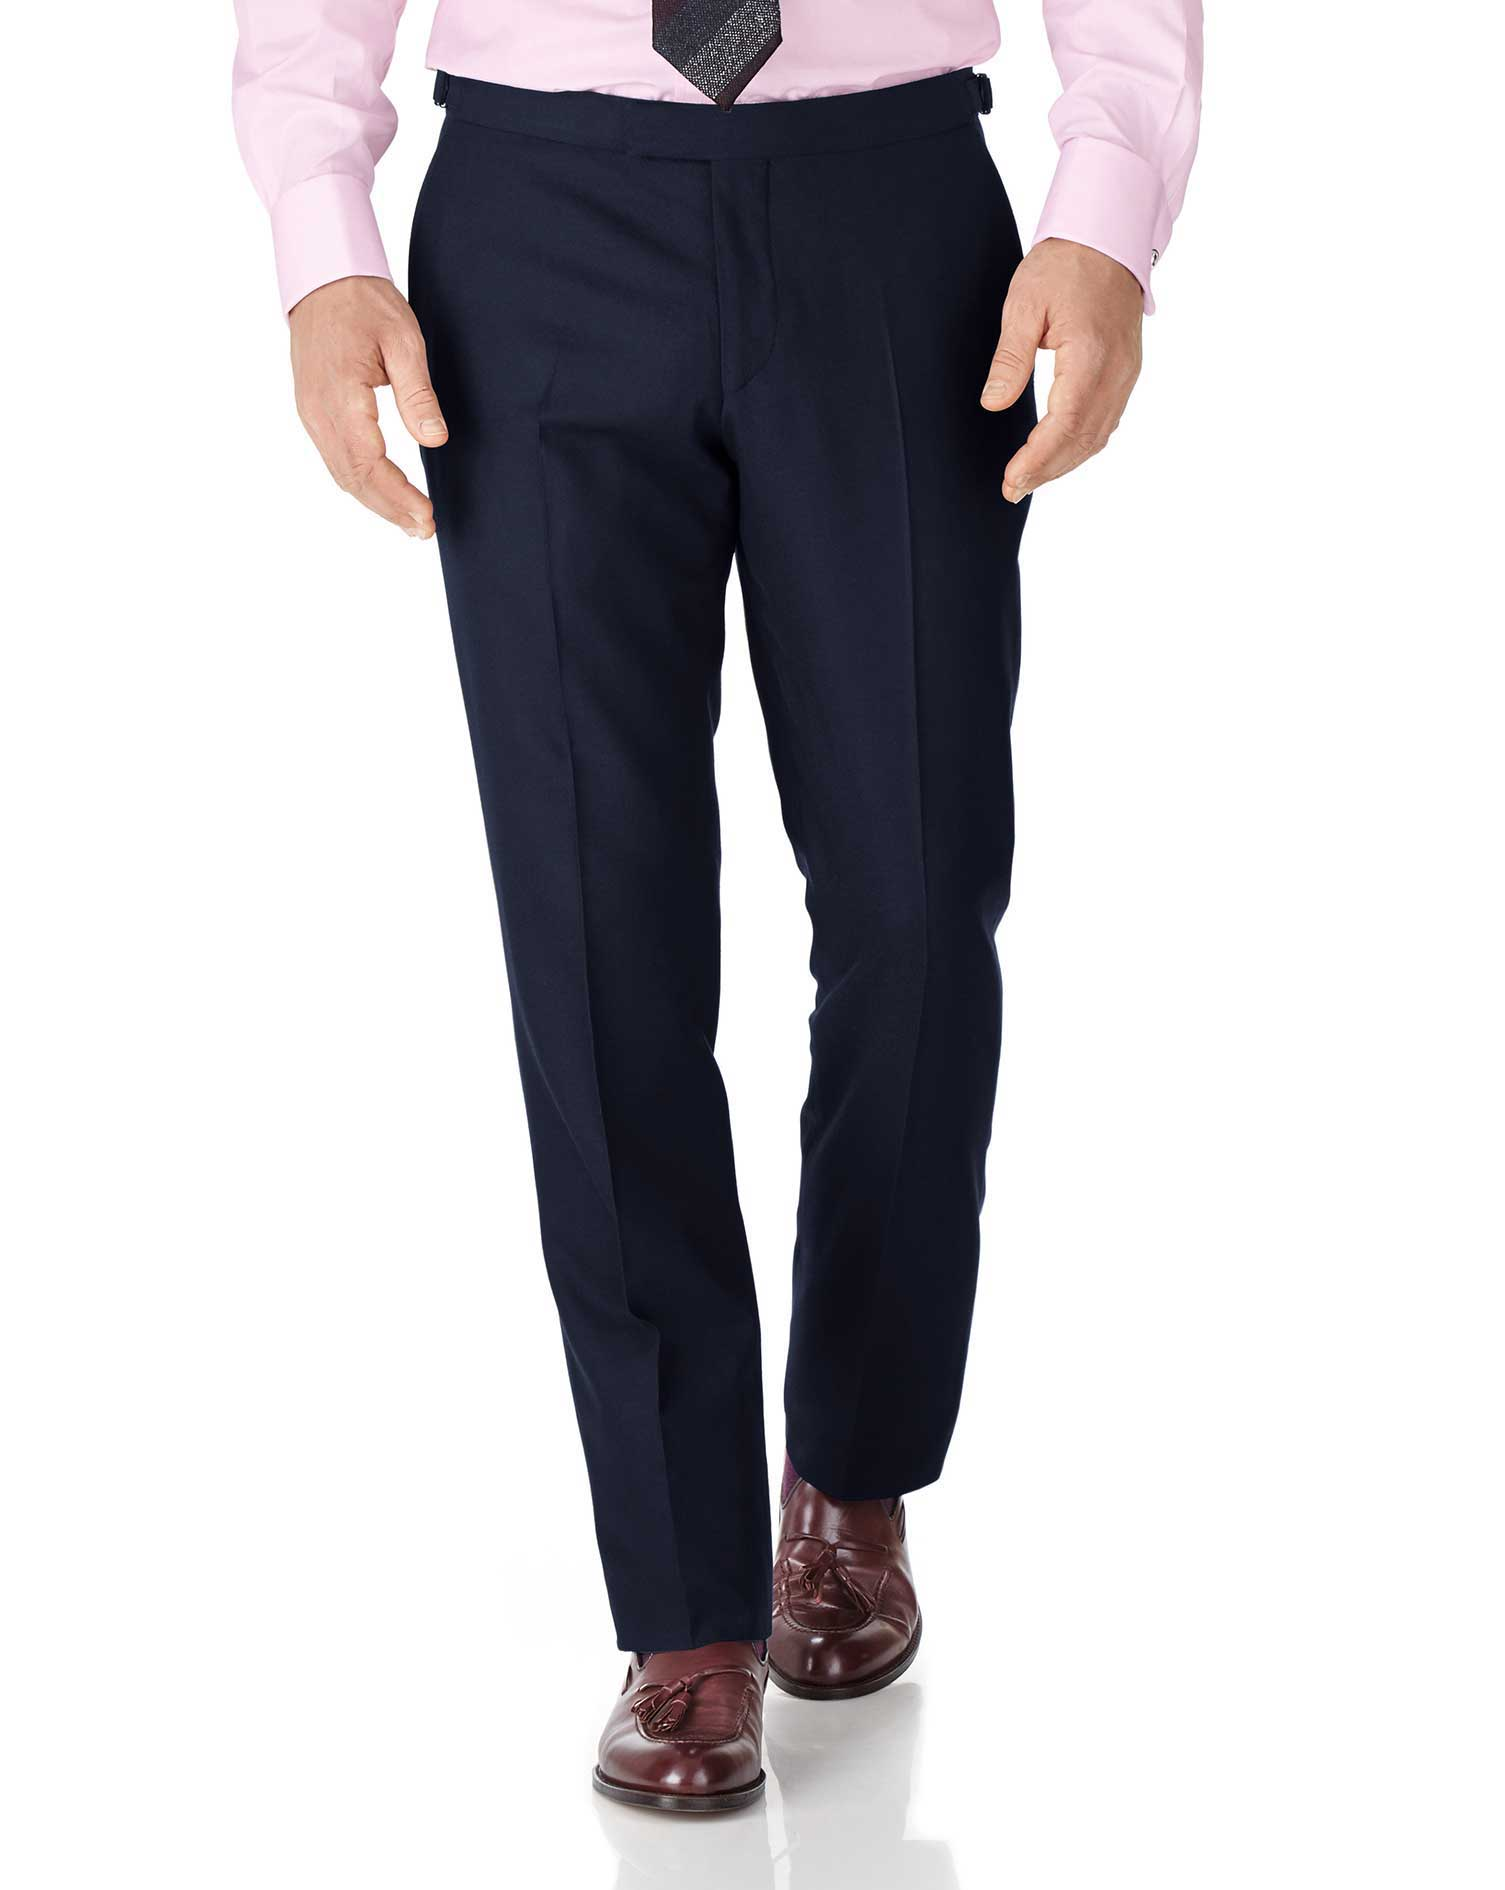 Navy Classic Fit British Serge Luxury Suit Trousers Size W36 L34 by Charles Tyrwhitt